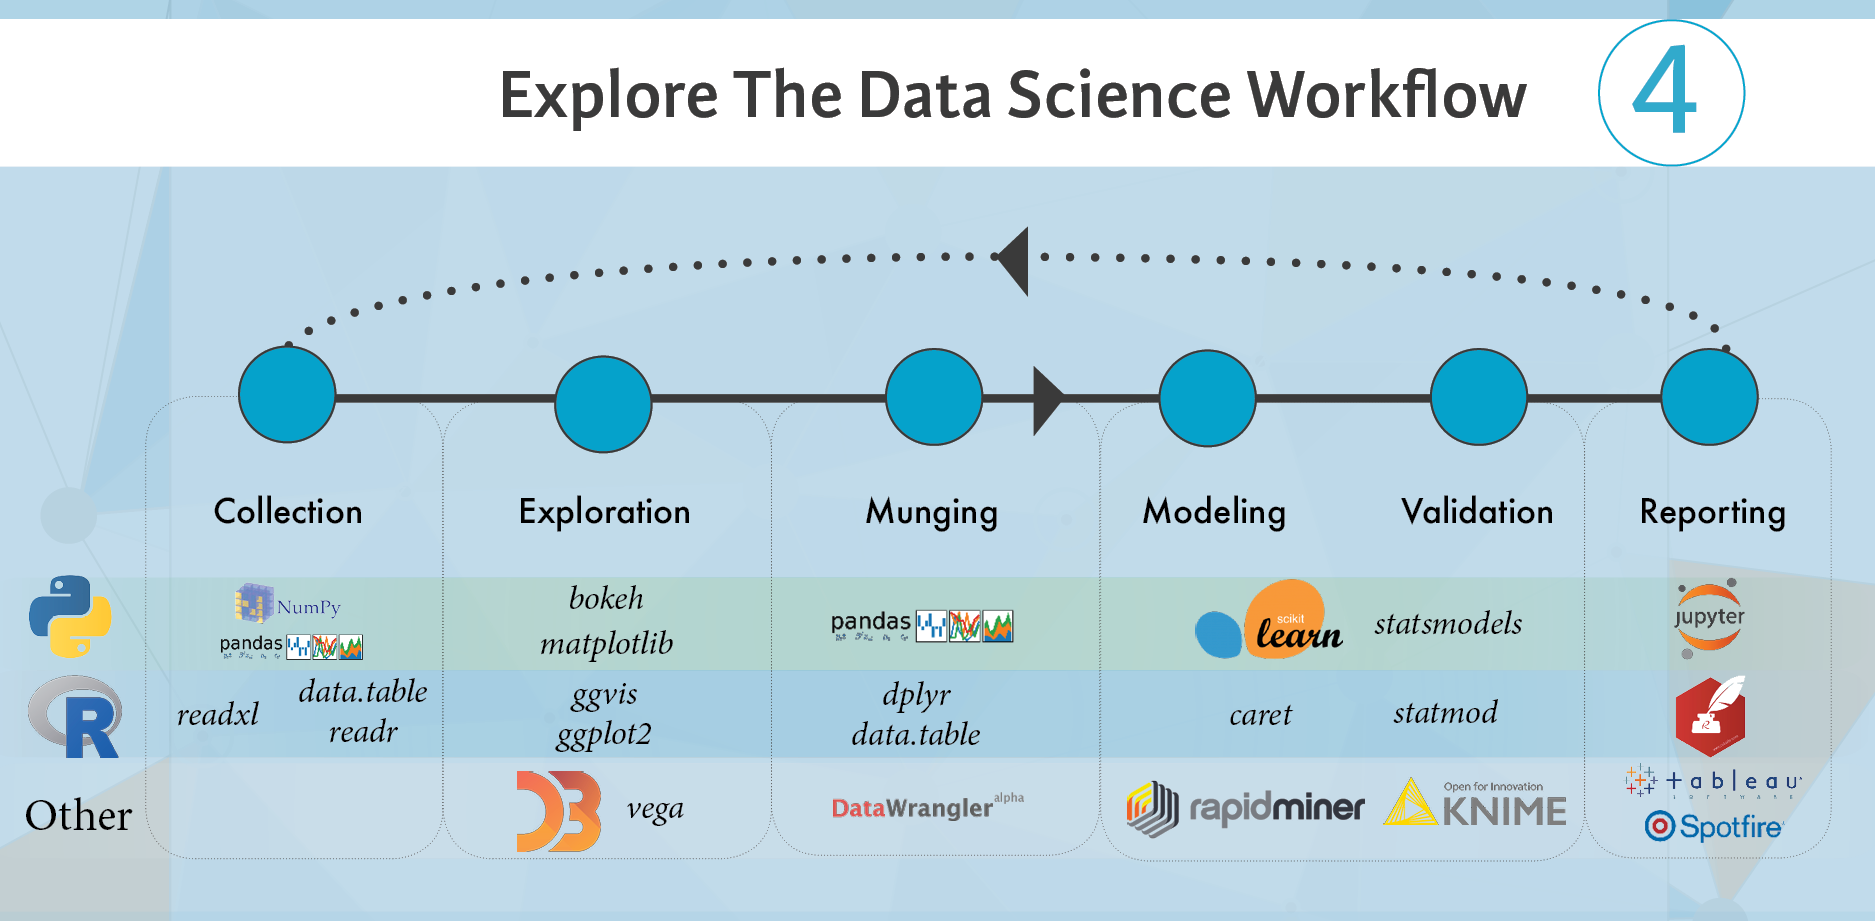 2 Where Do I Start And What Is Step By Step Process To Become A Data Scientist Quora Data Scientist Data Science Machine Learning